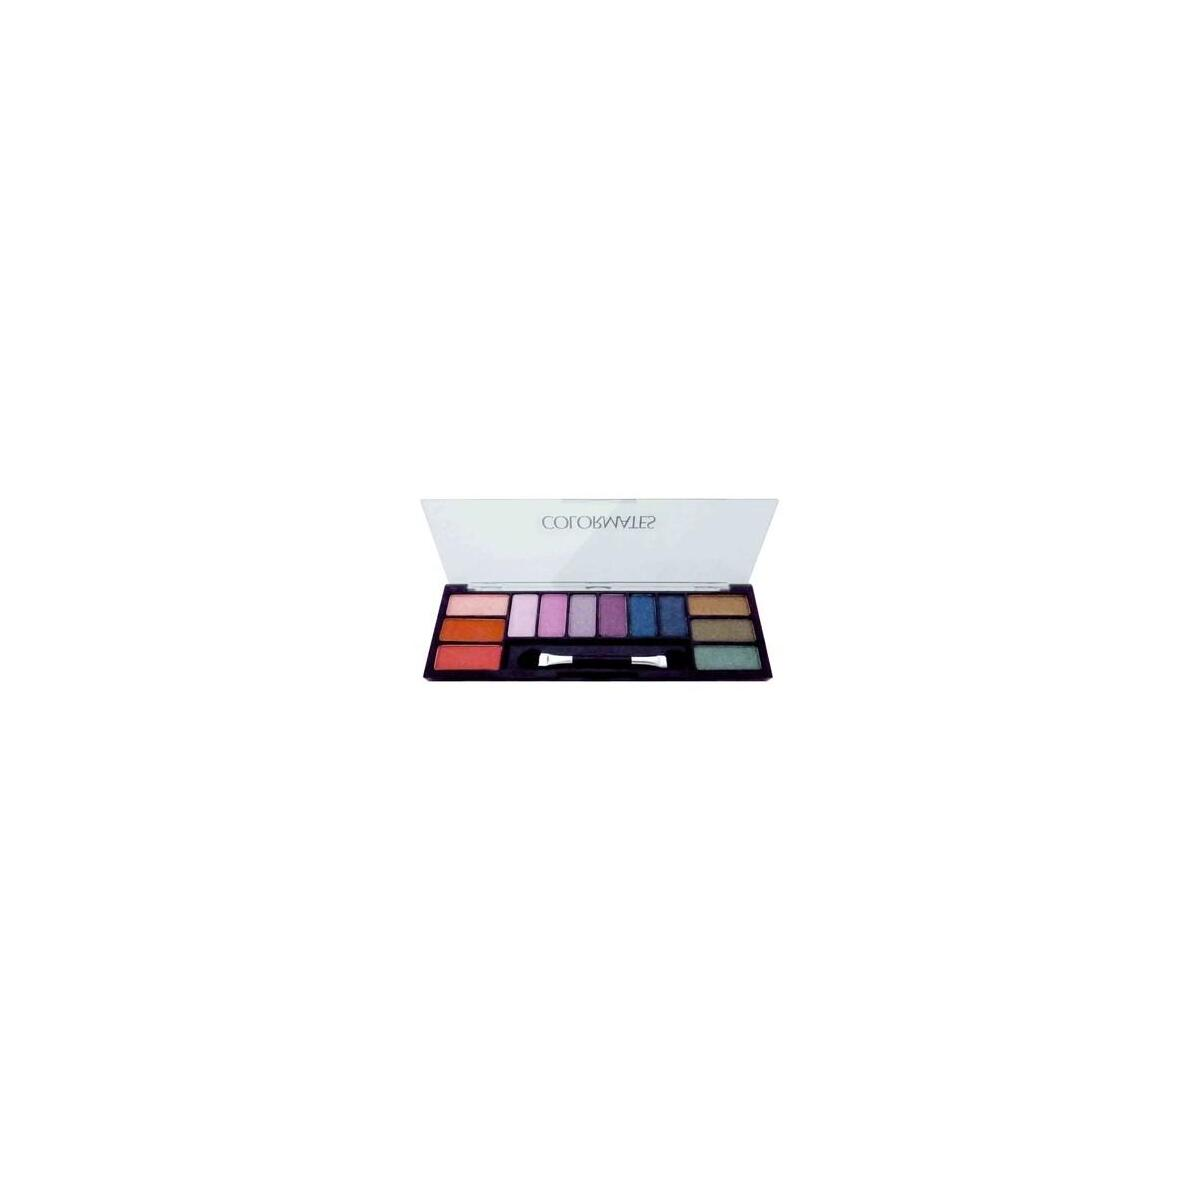 Colormates Eyeshadow Palettes - Flower Bouquet